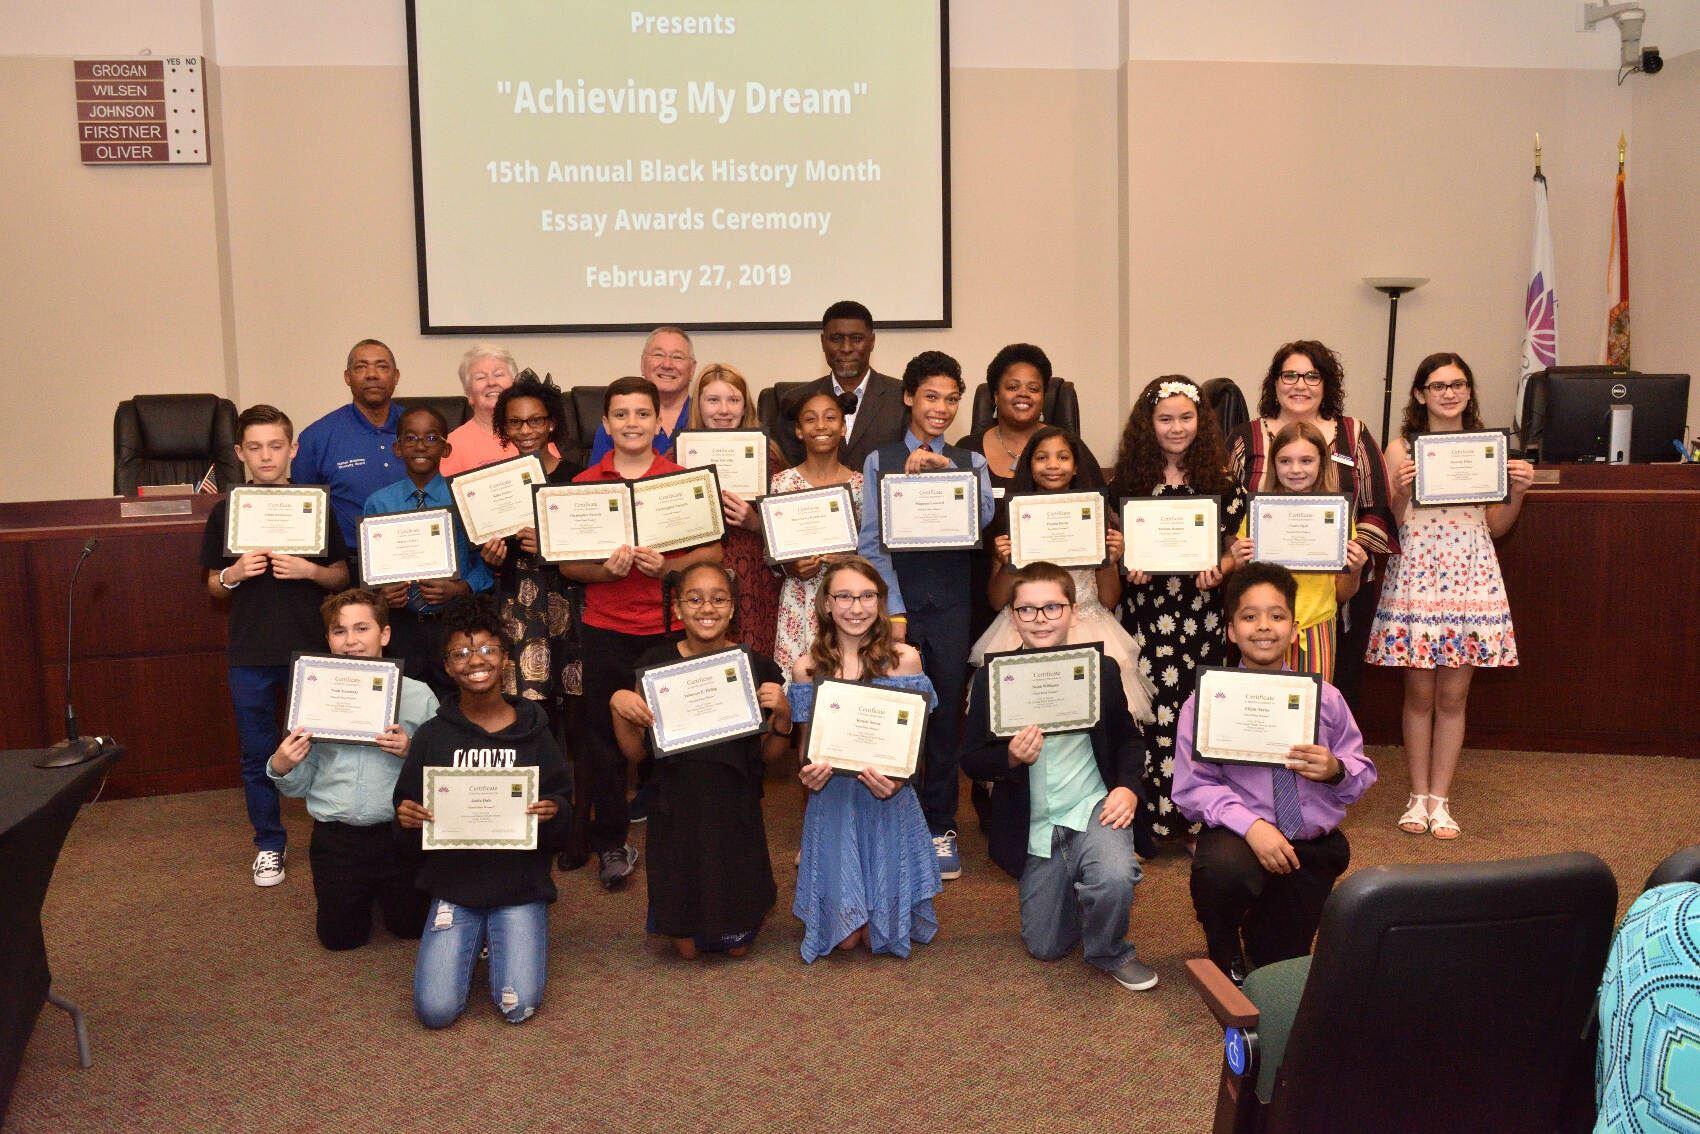 Black History Essay Awards 2-27-19 (42)